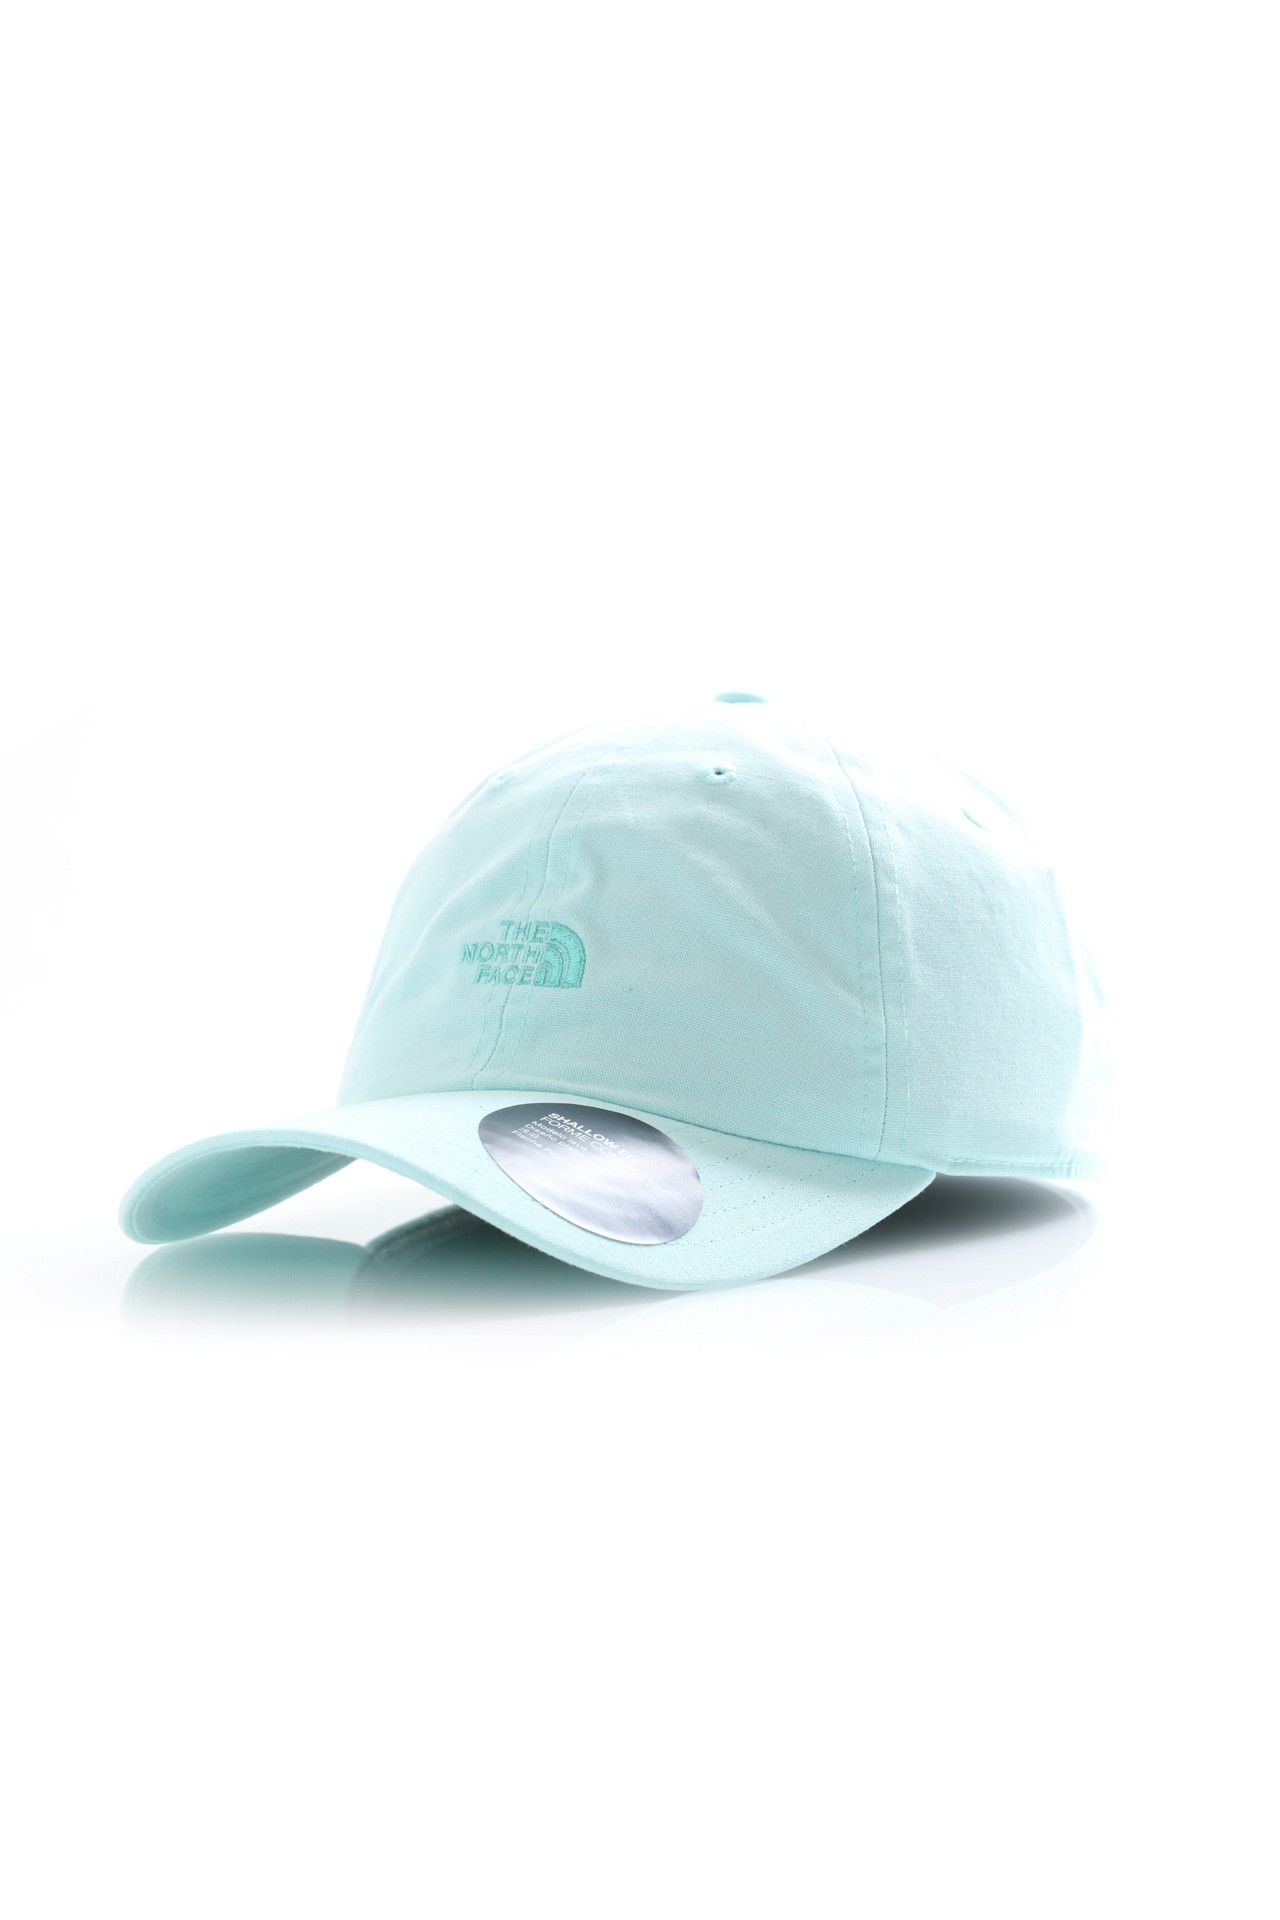 Afbeelding van The North Face Dad Cap Washed Norm Hat Faded Blue Wash NF0A3FKNNLM